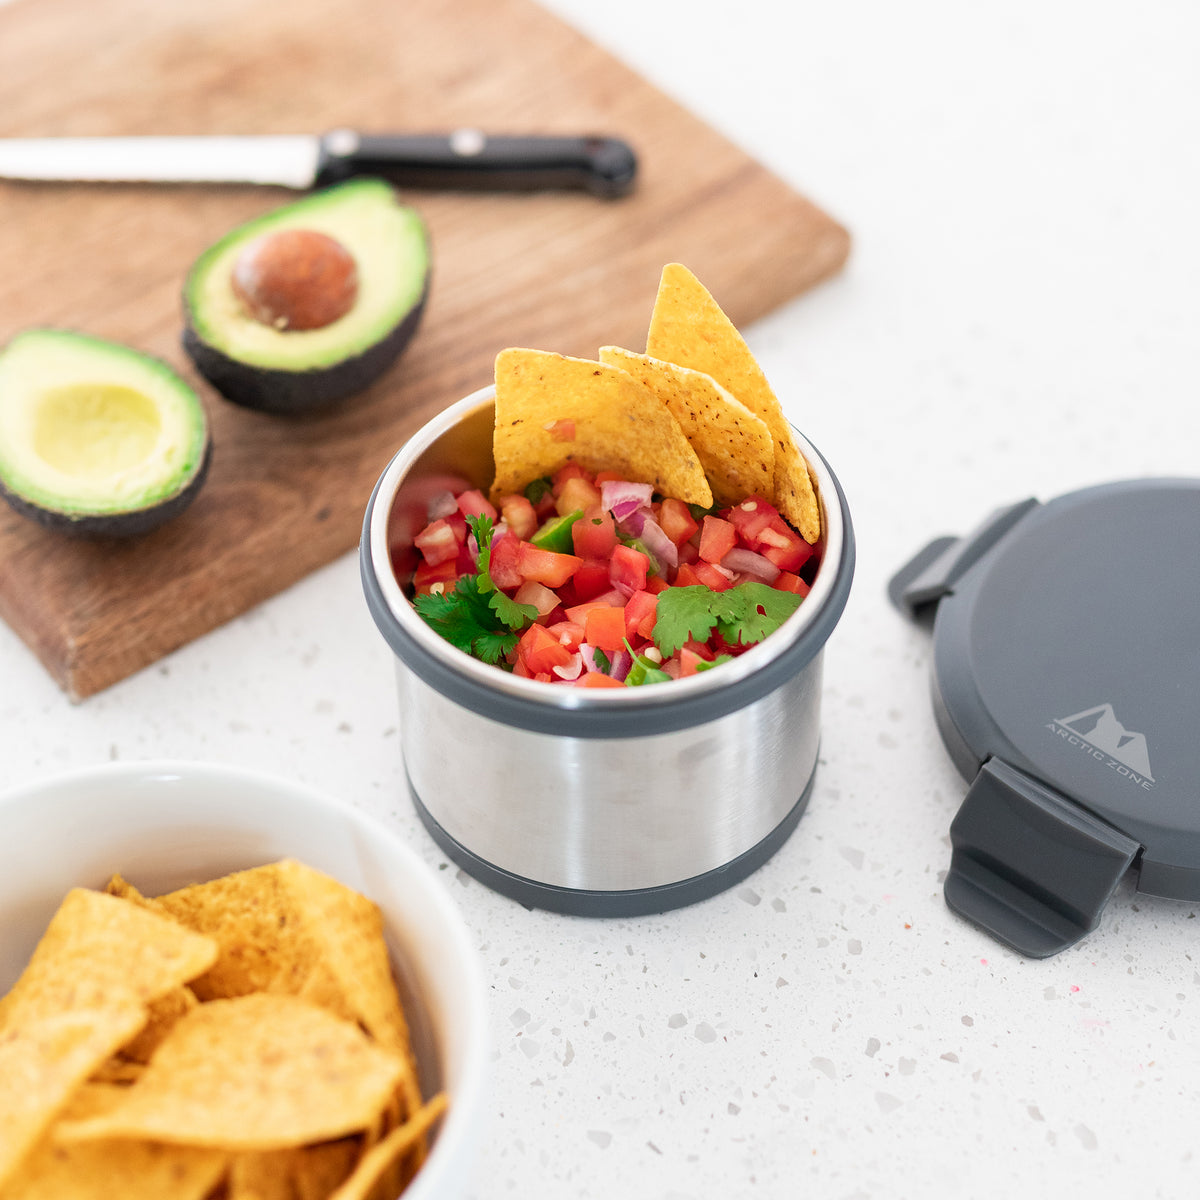 Leak Proof 16oz Thermal Bowl With Safe & Easy 4 Lock Lid - Grey - Lifestyle, prepping salsa for nachos